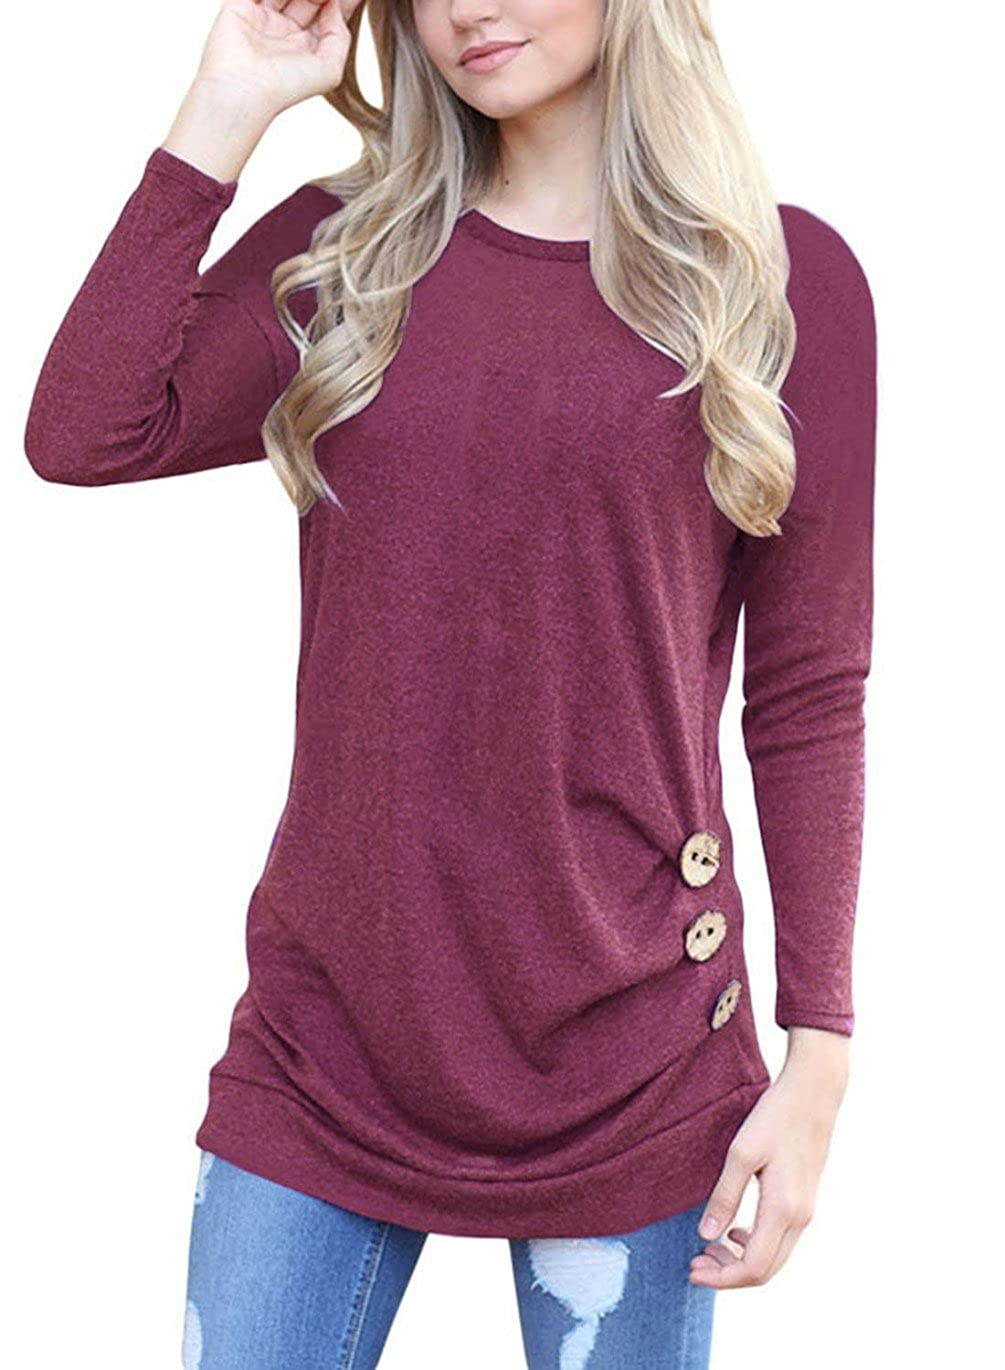 Q& Y Women's Casual Long Sleeve Loose Tunic Buttons Decor Tops Blouse T-Shirt Sweater